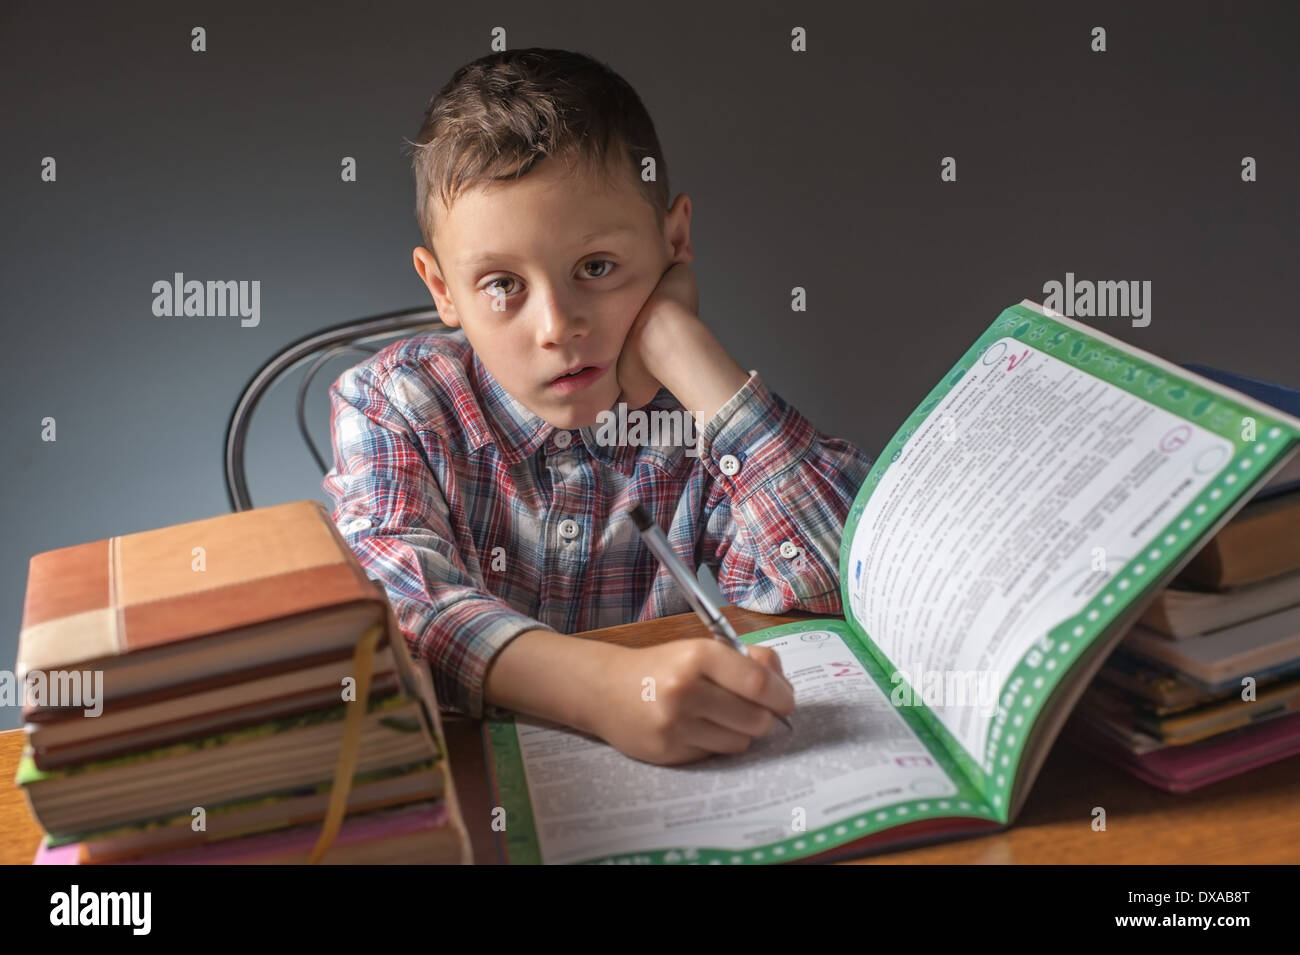 boy does a home task - Stock Image